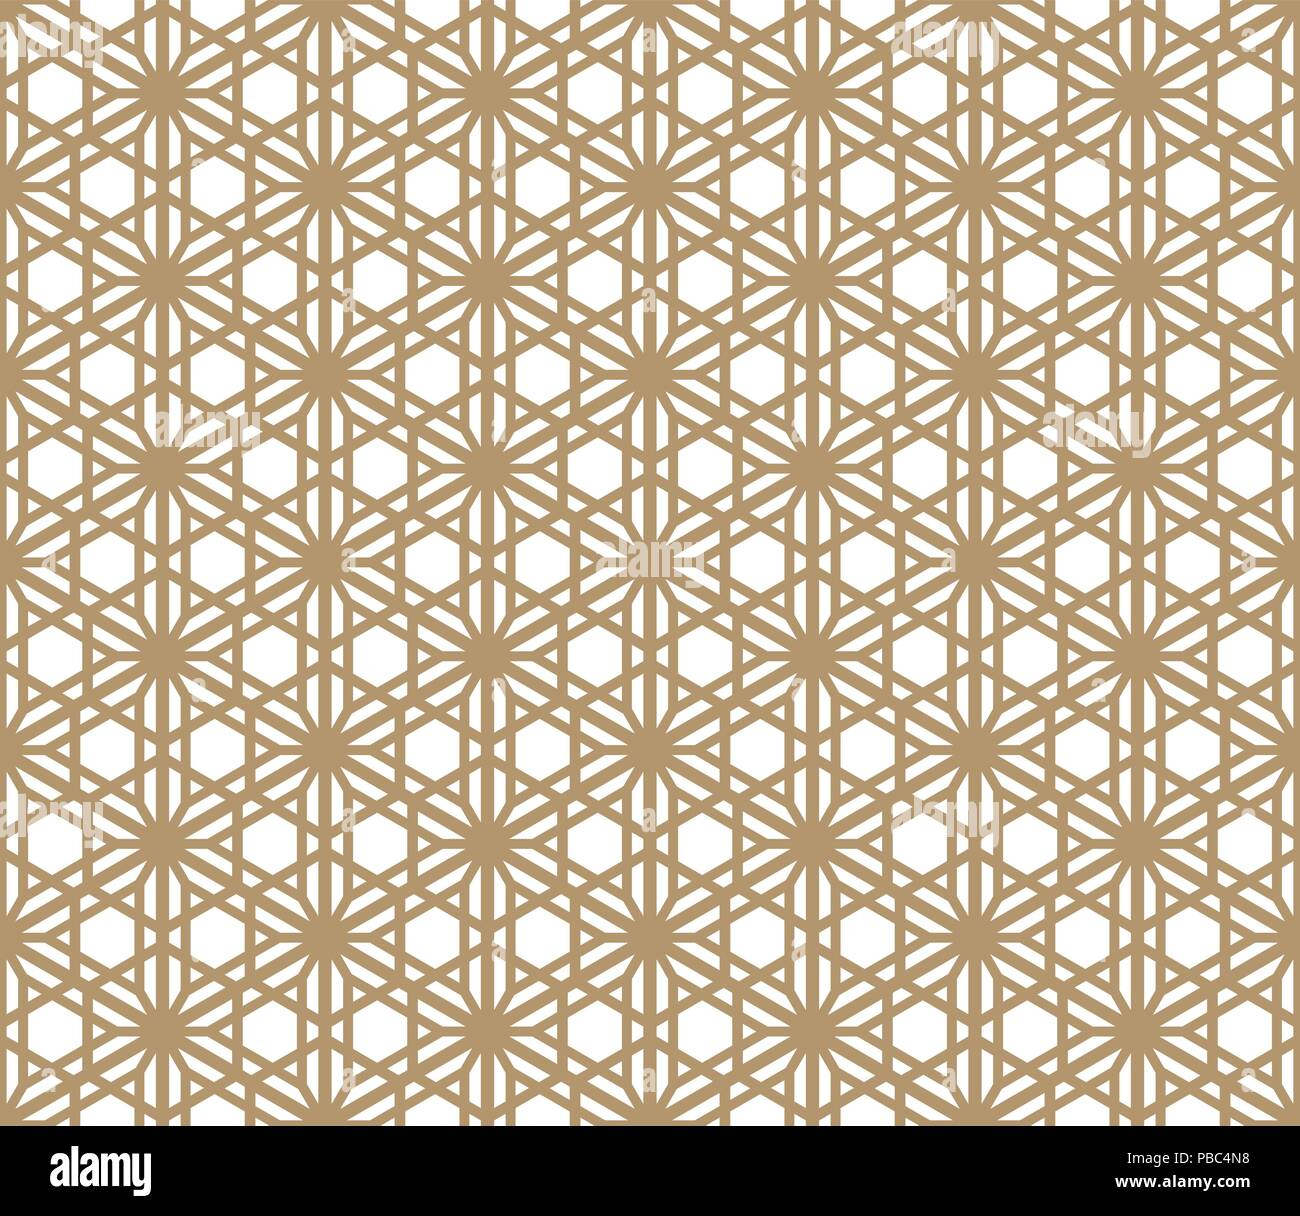 Seamless Pattern Based On Japanese Ornament Kumiko.golden Color.hexagon Grid.  - Stock